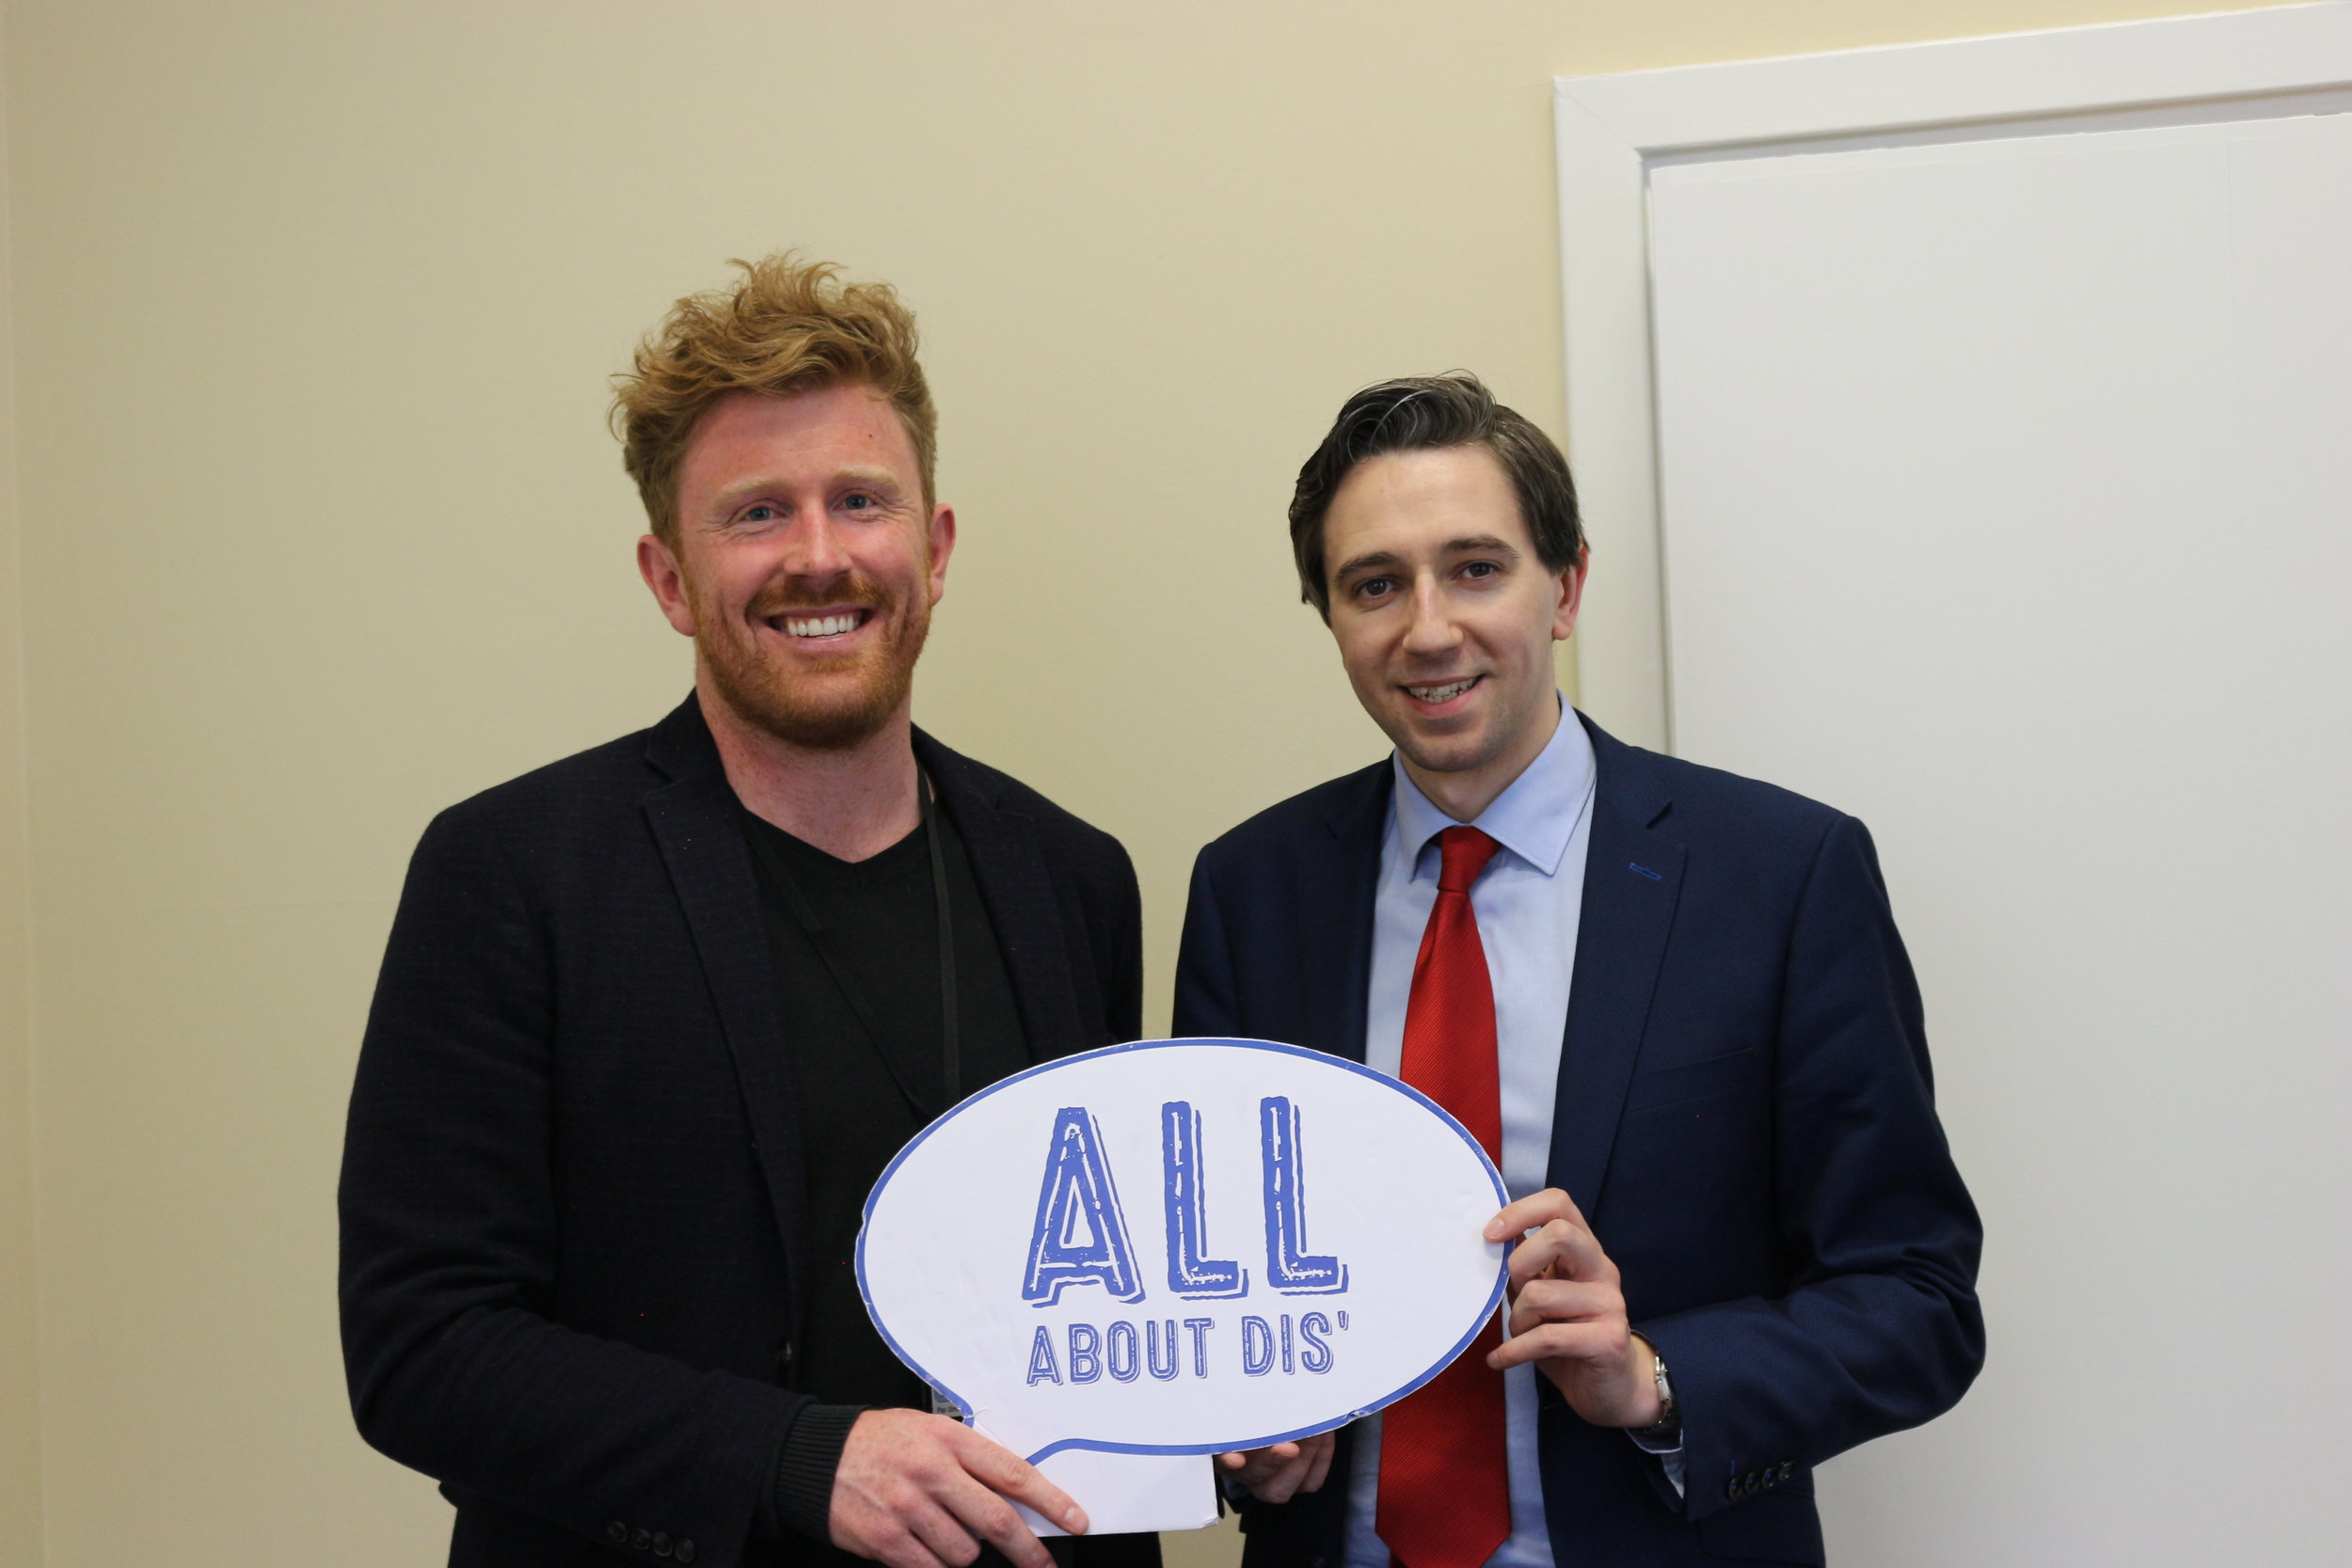 Minister for Health Simon Harris talks abut his vision for disability in Ireland